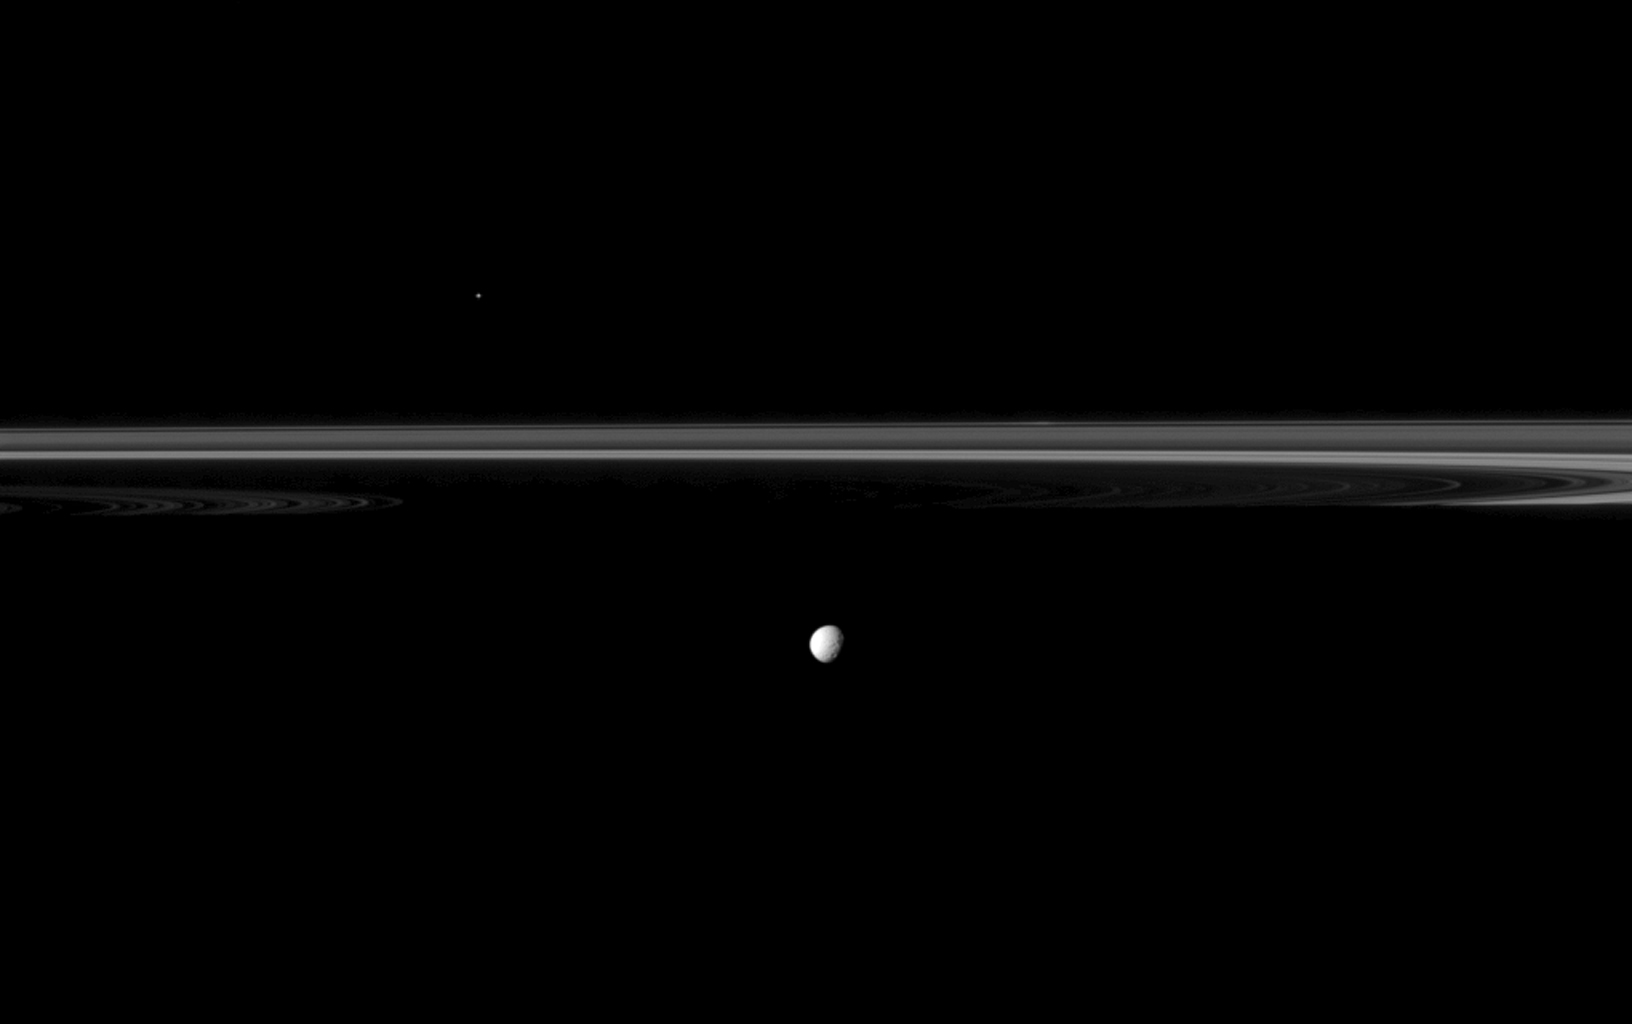 Saturn's moon Mimas joins the planet's rings which appear truncated by the planet's shadow in this image from NASA's Cassini spacecraft.